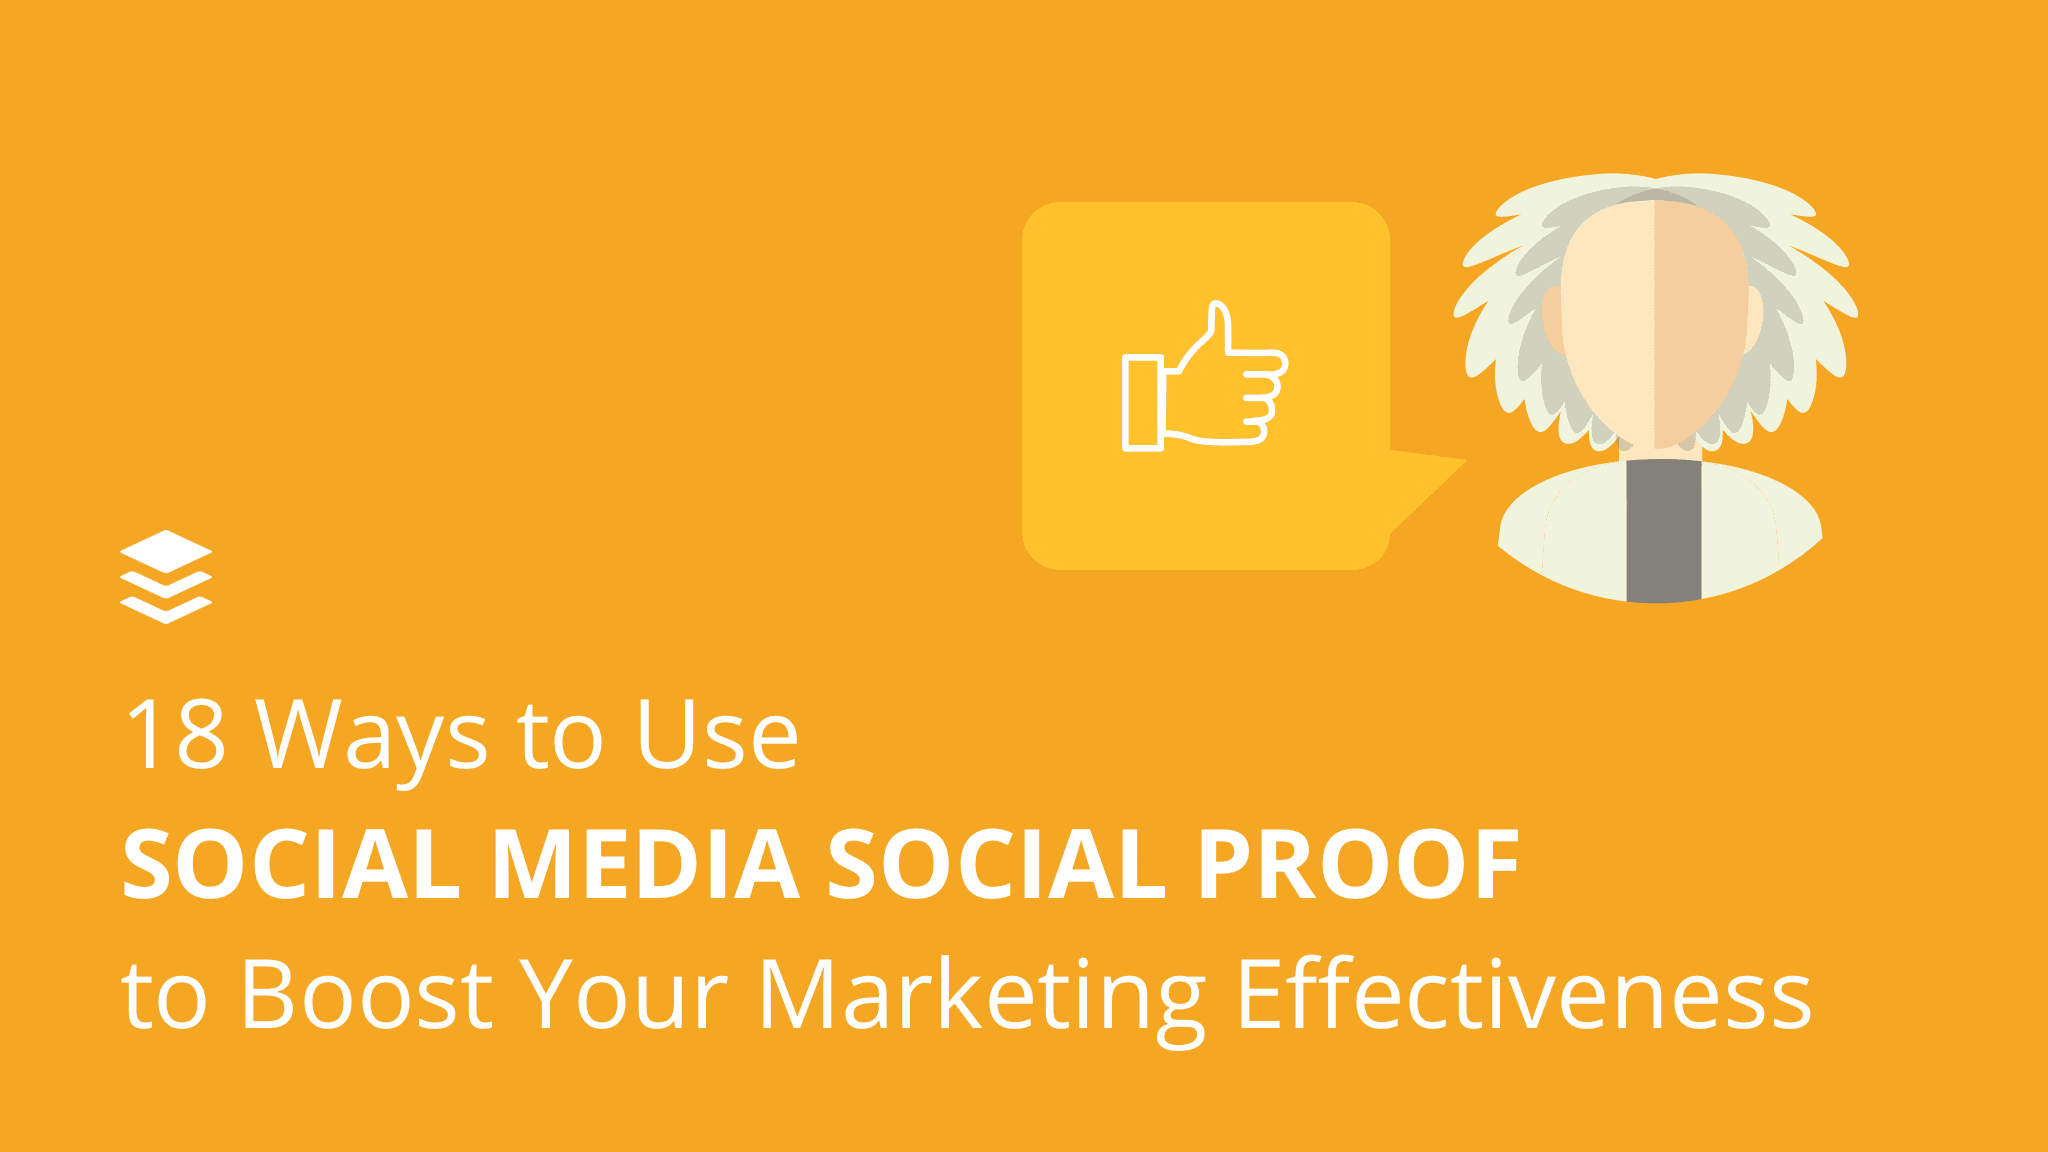 19 Ways to Use Social Media Social Proof to Boost Your Marketing Effectiveness